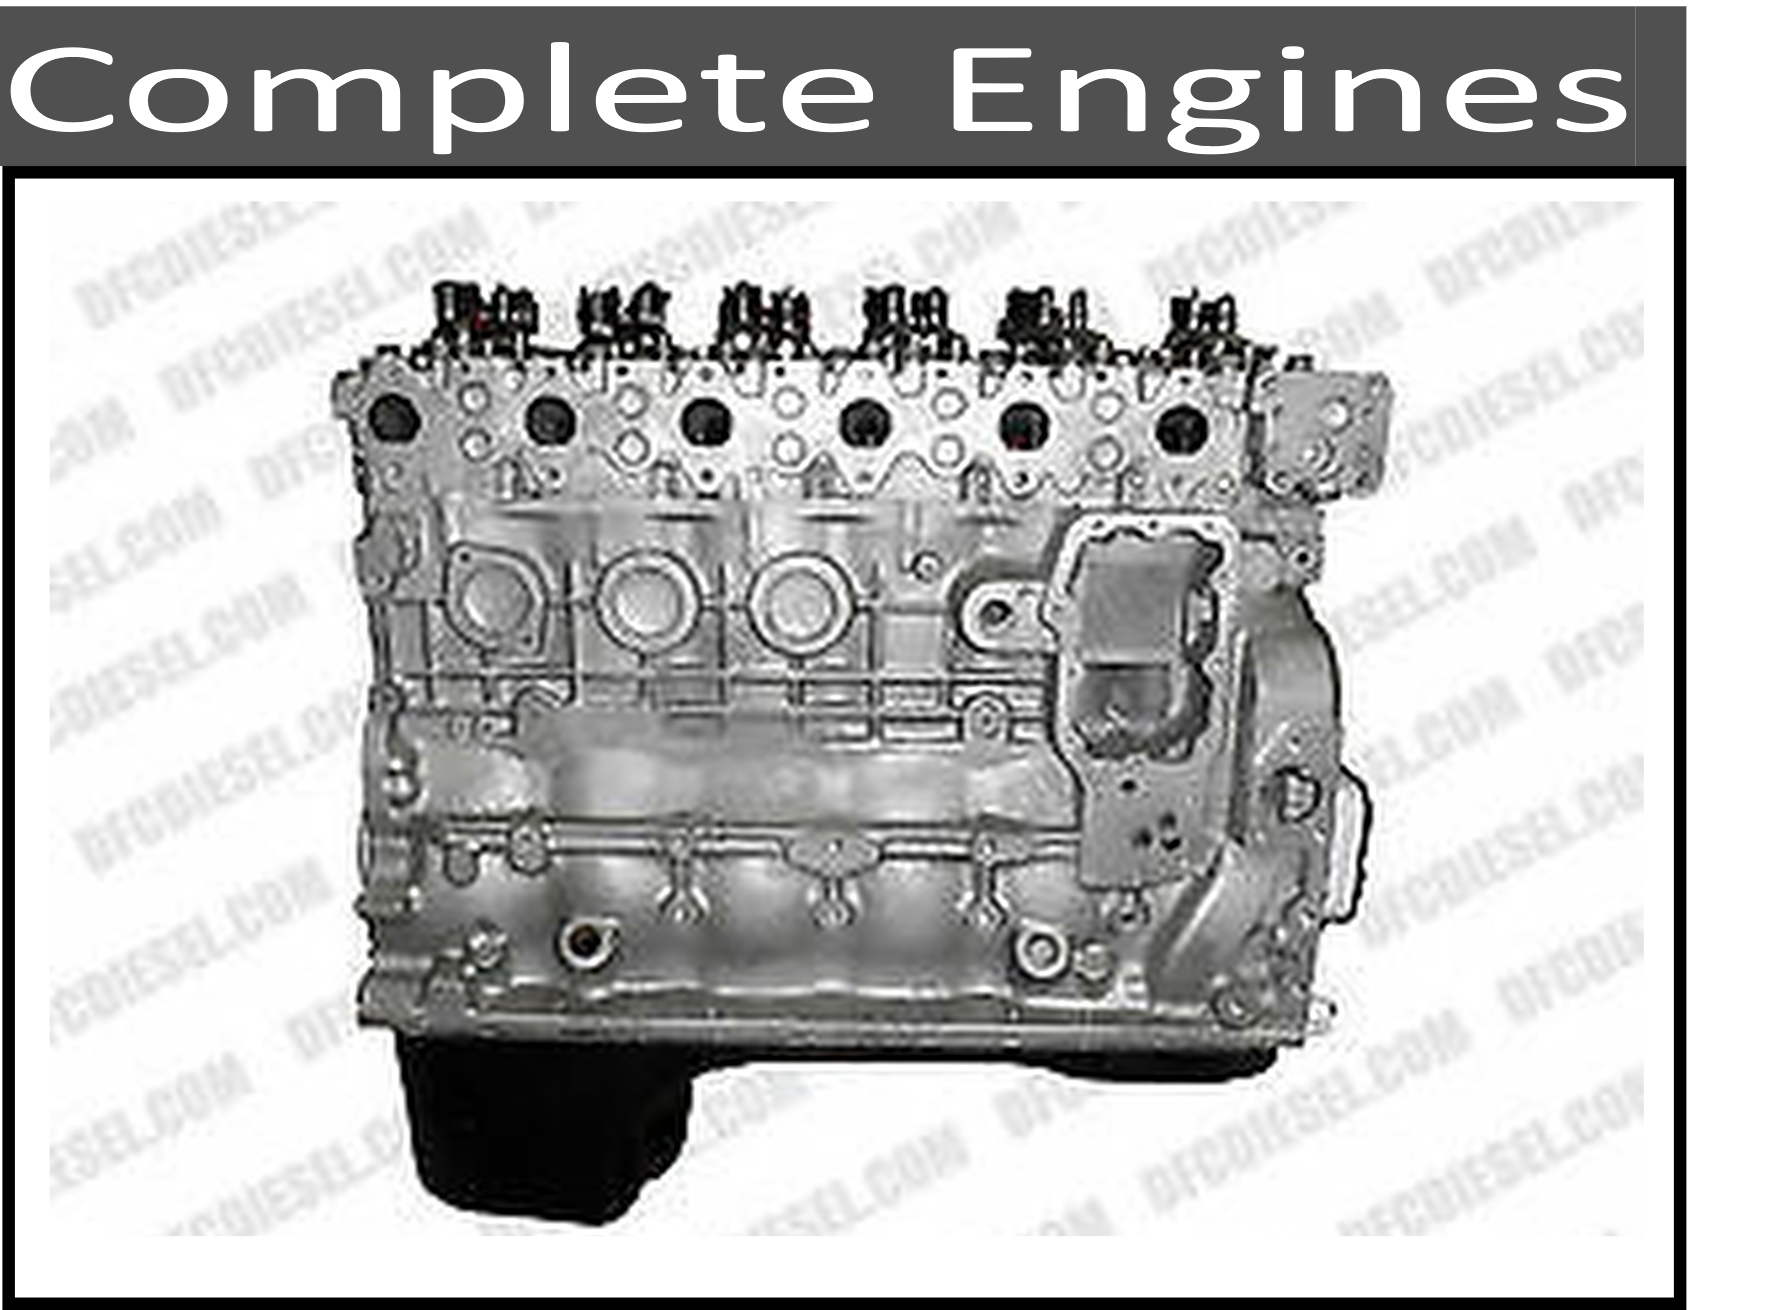 Remanufactured Short and Long Block Engines